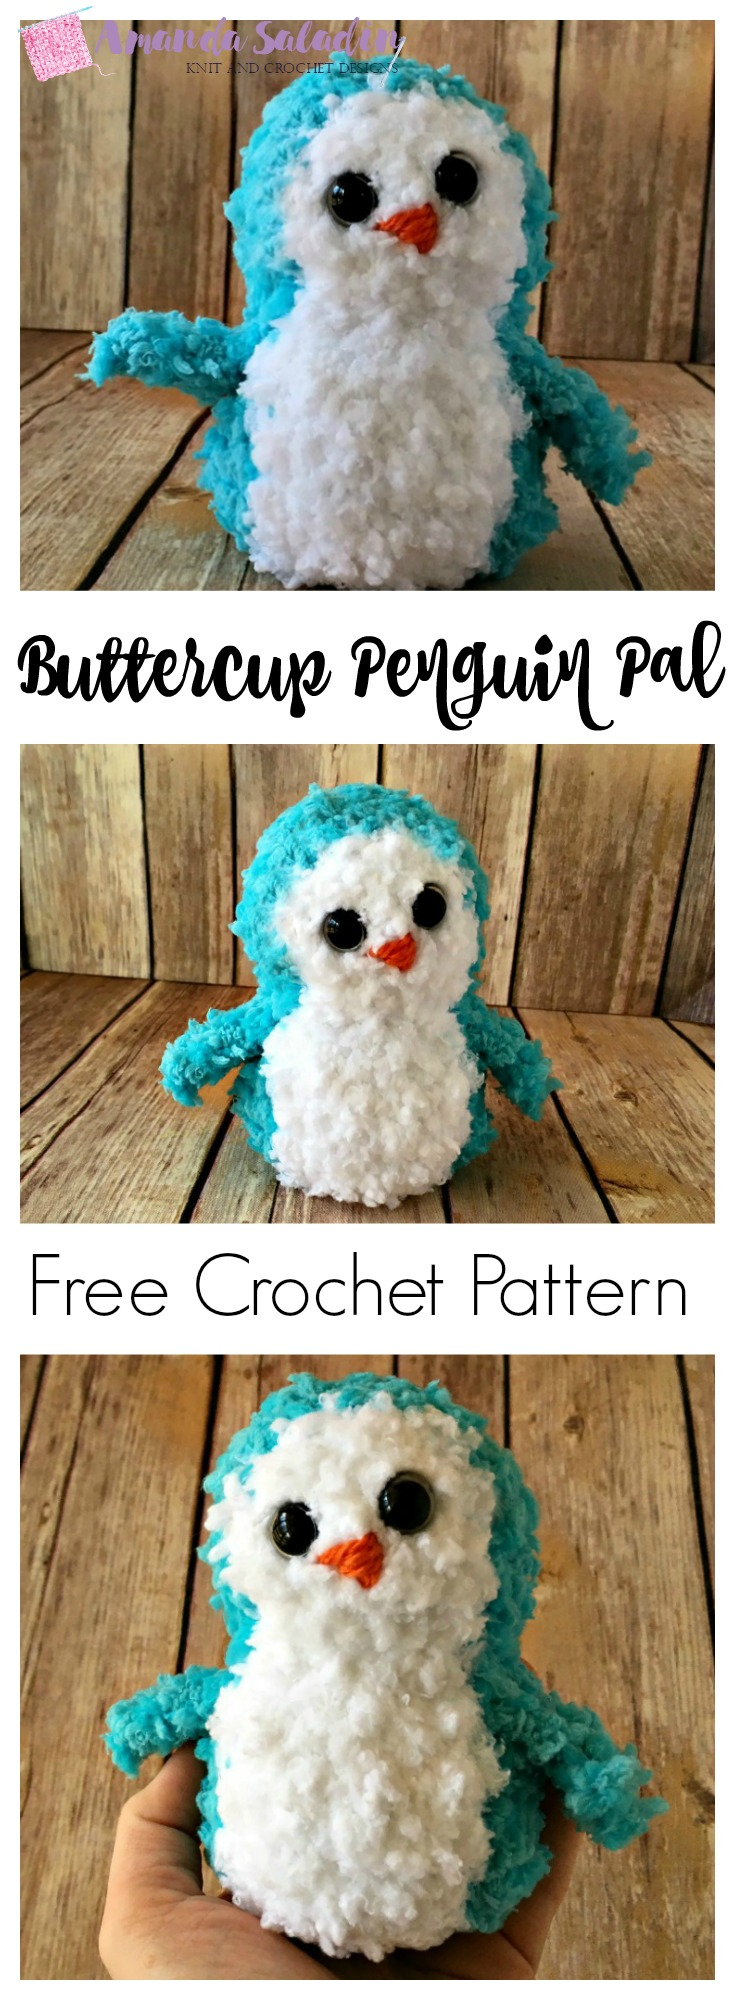 What a cute little penguin! And so easy to make!